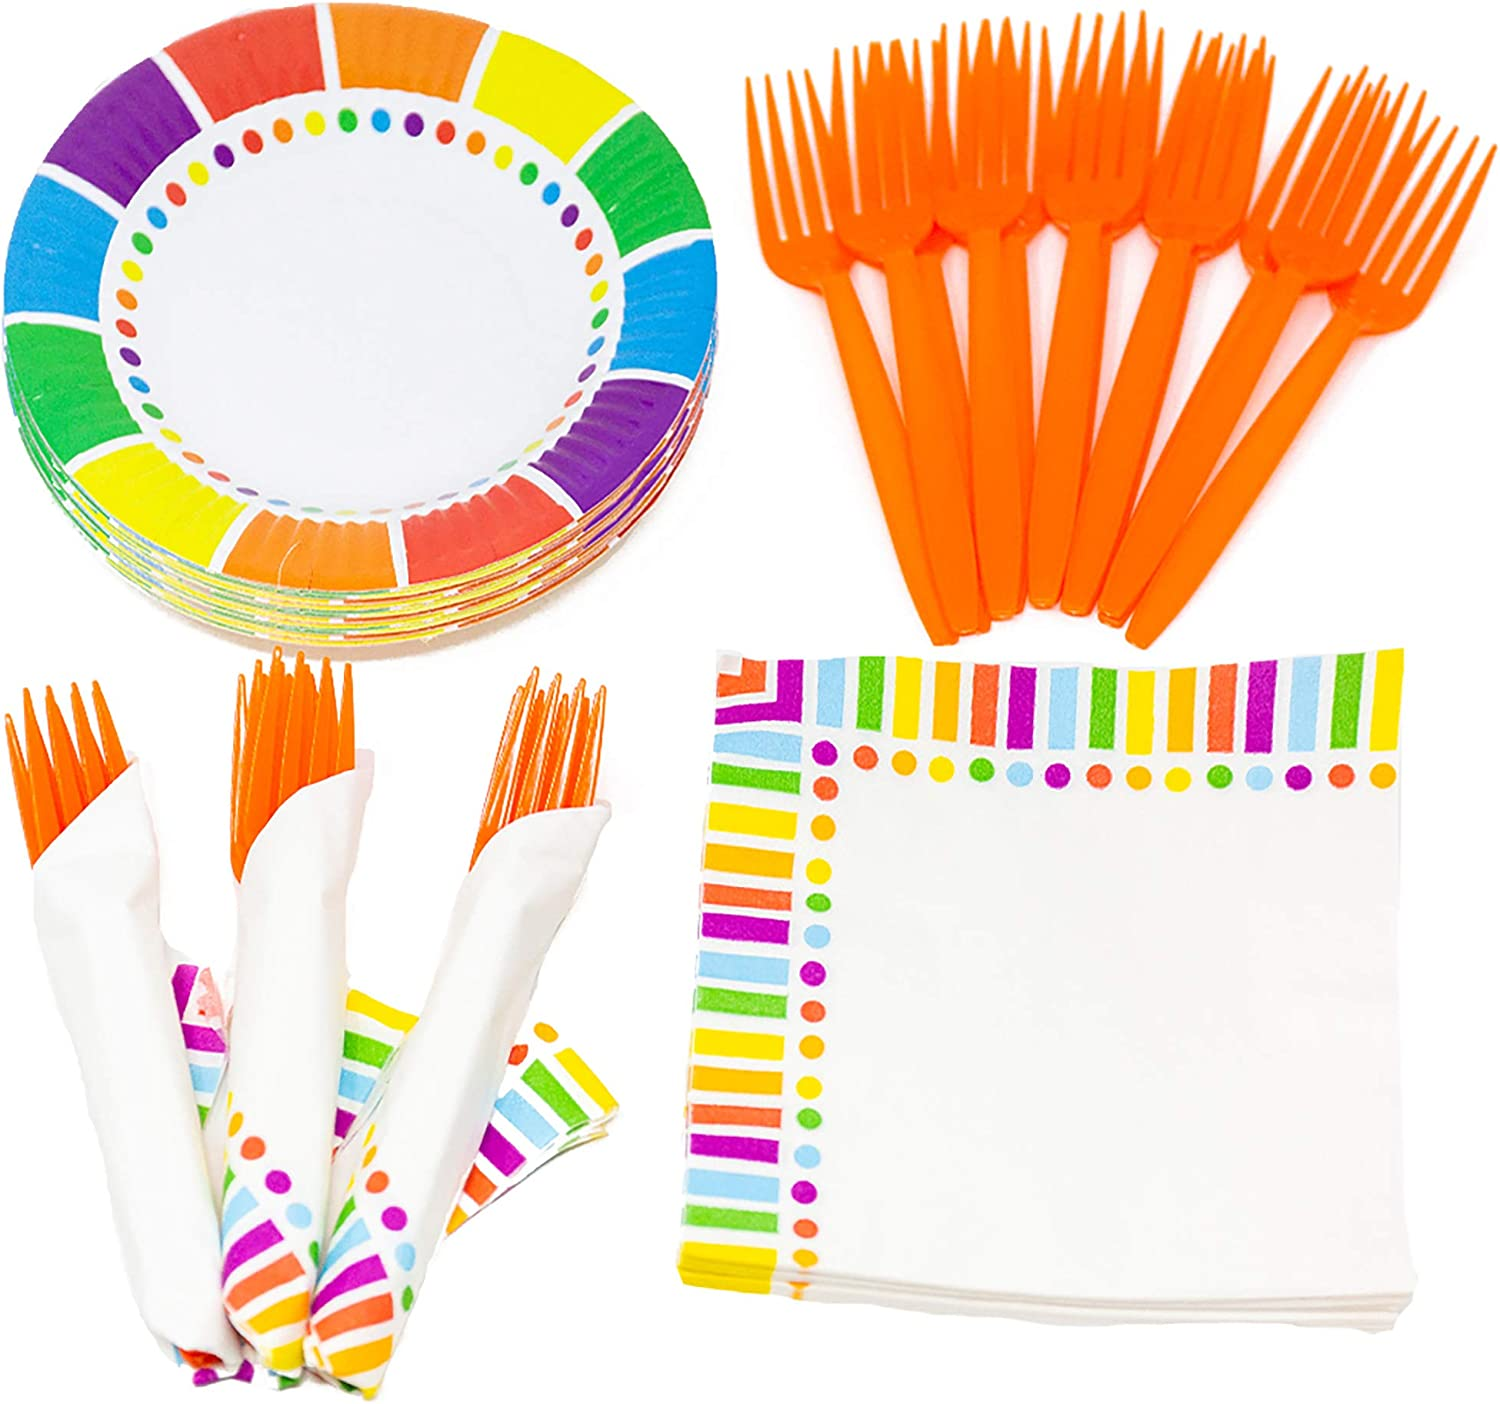 Rainbow Value Party Supplies Pack (58+ Pieces for 16 Guests), Value Party Kit, Rainbow Party Plates, Rainbow Birthday, Napkins, Forks, Tableware: Health & Personal Care